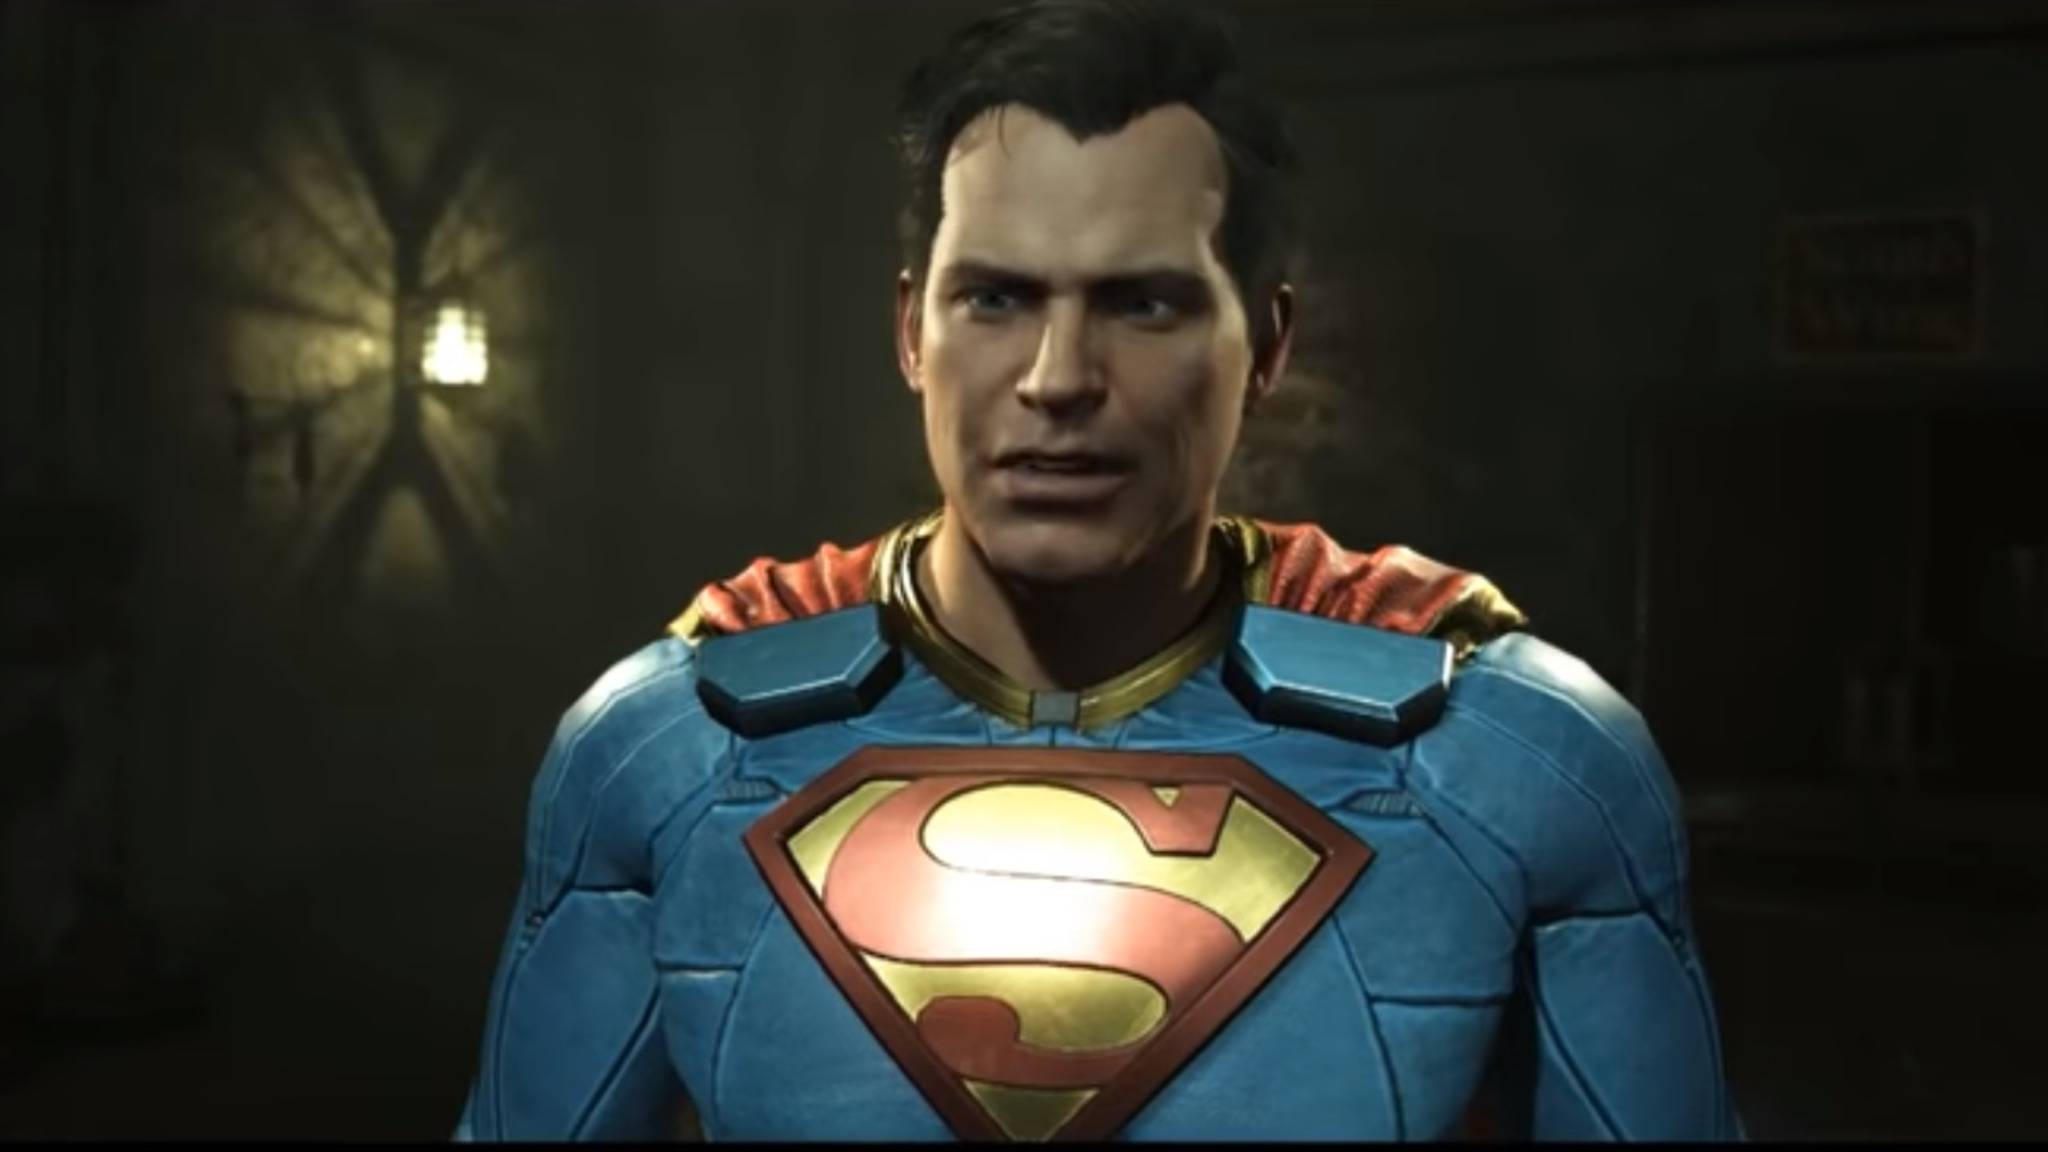 Superman_Injustice2_cutscene_16_9